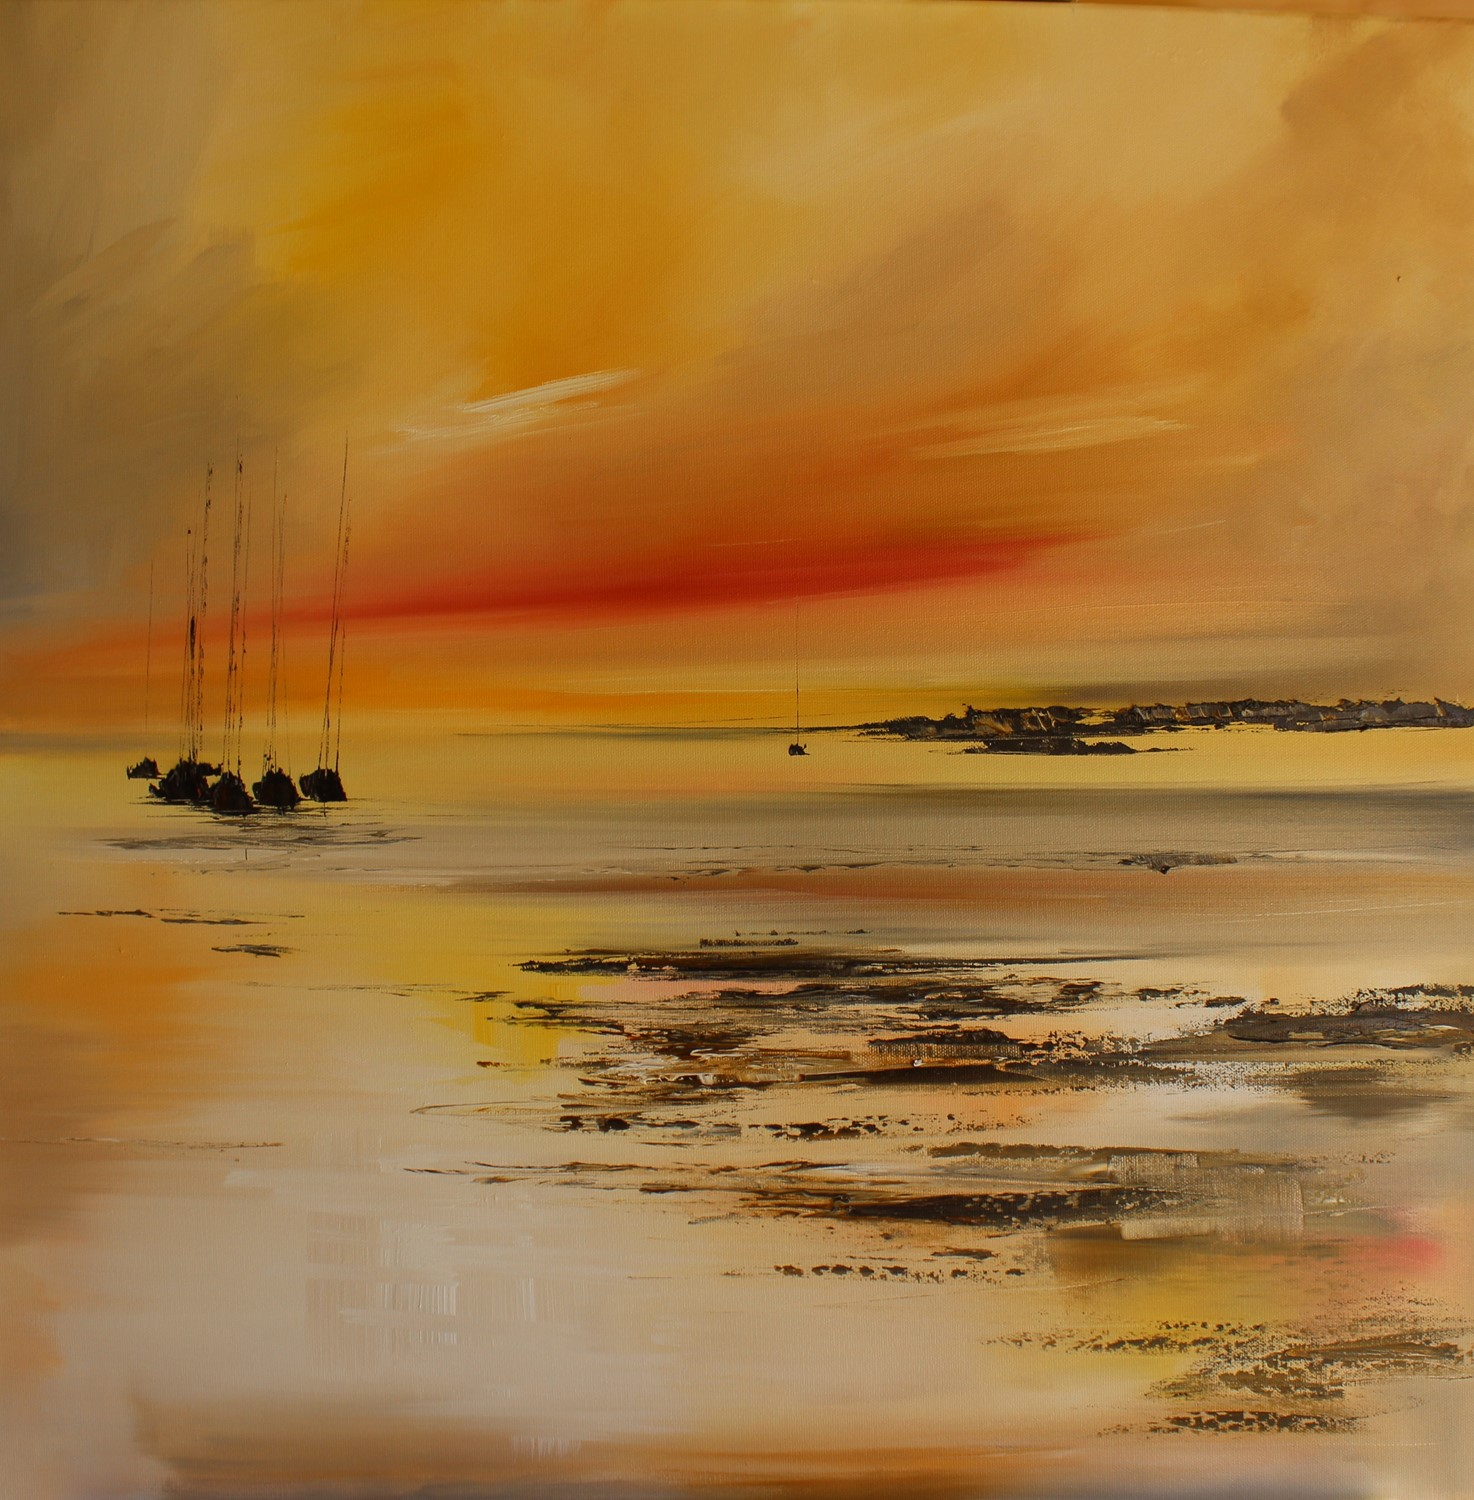 'As the Sunset Lights the Sky' by artist Rosanne Barr